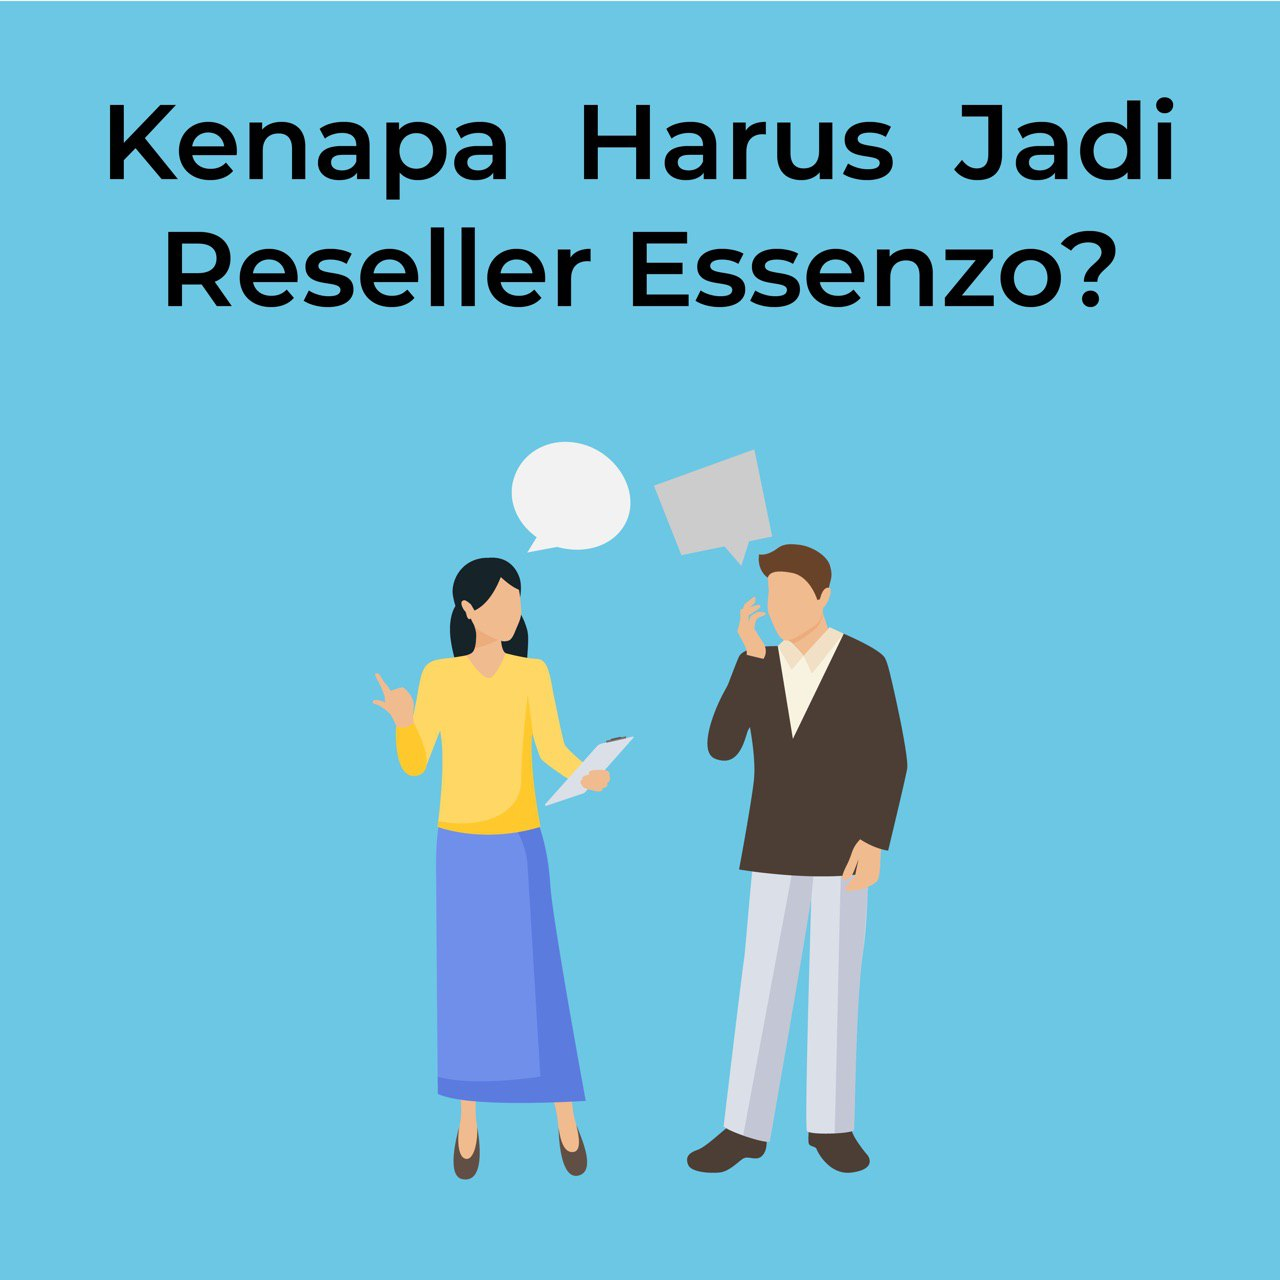 ESSENZO RESELLER